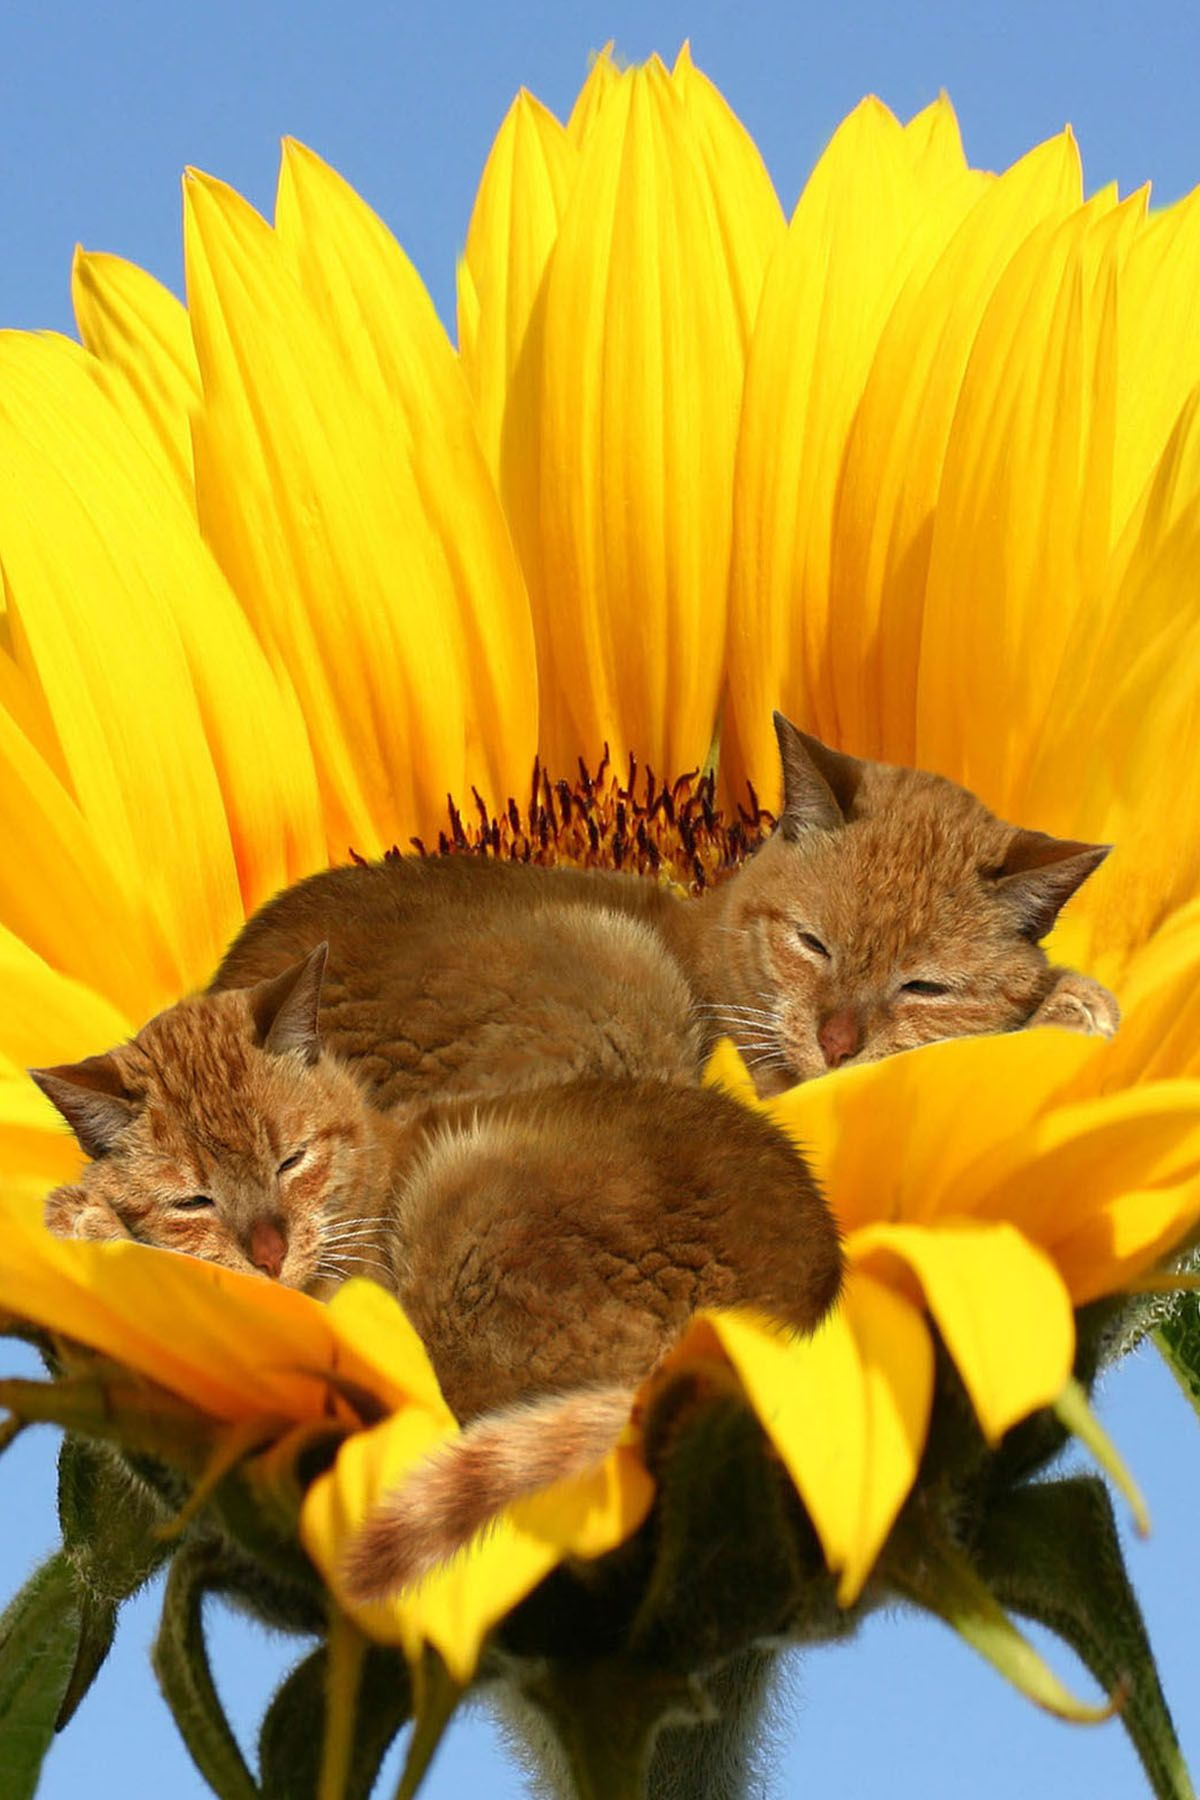 Cats in sunflower (With images) Kittens, Animals, Cats